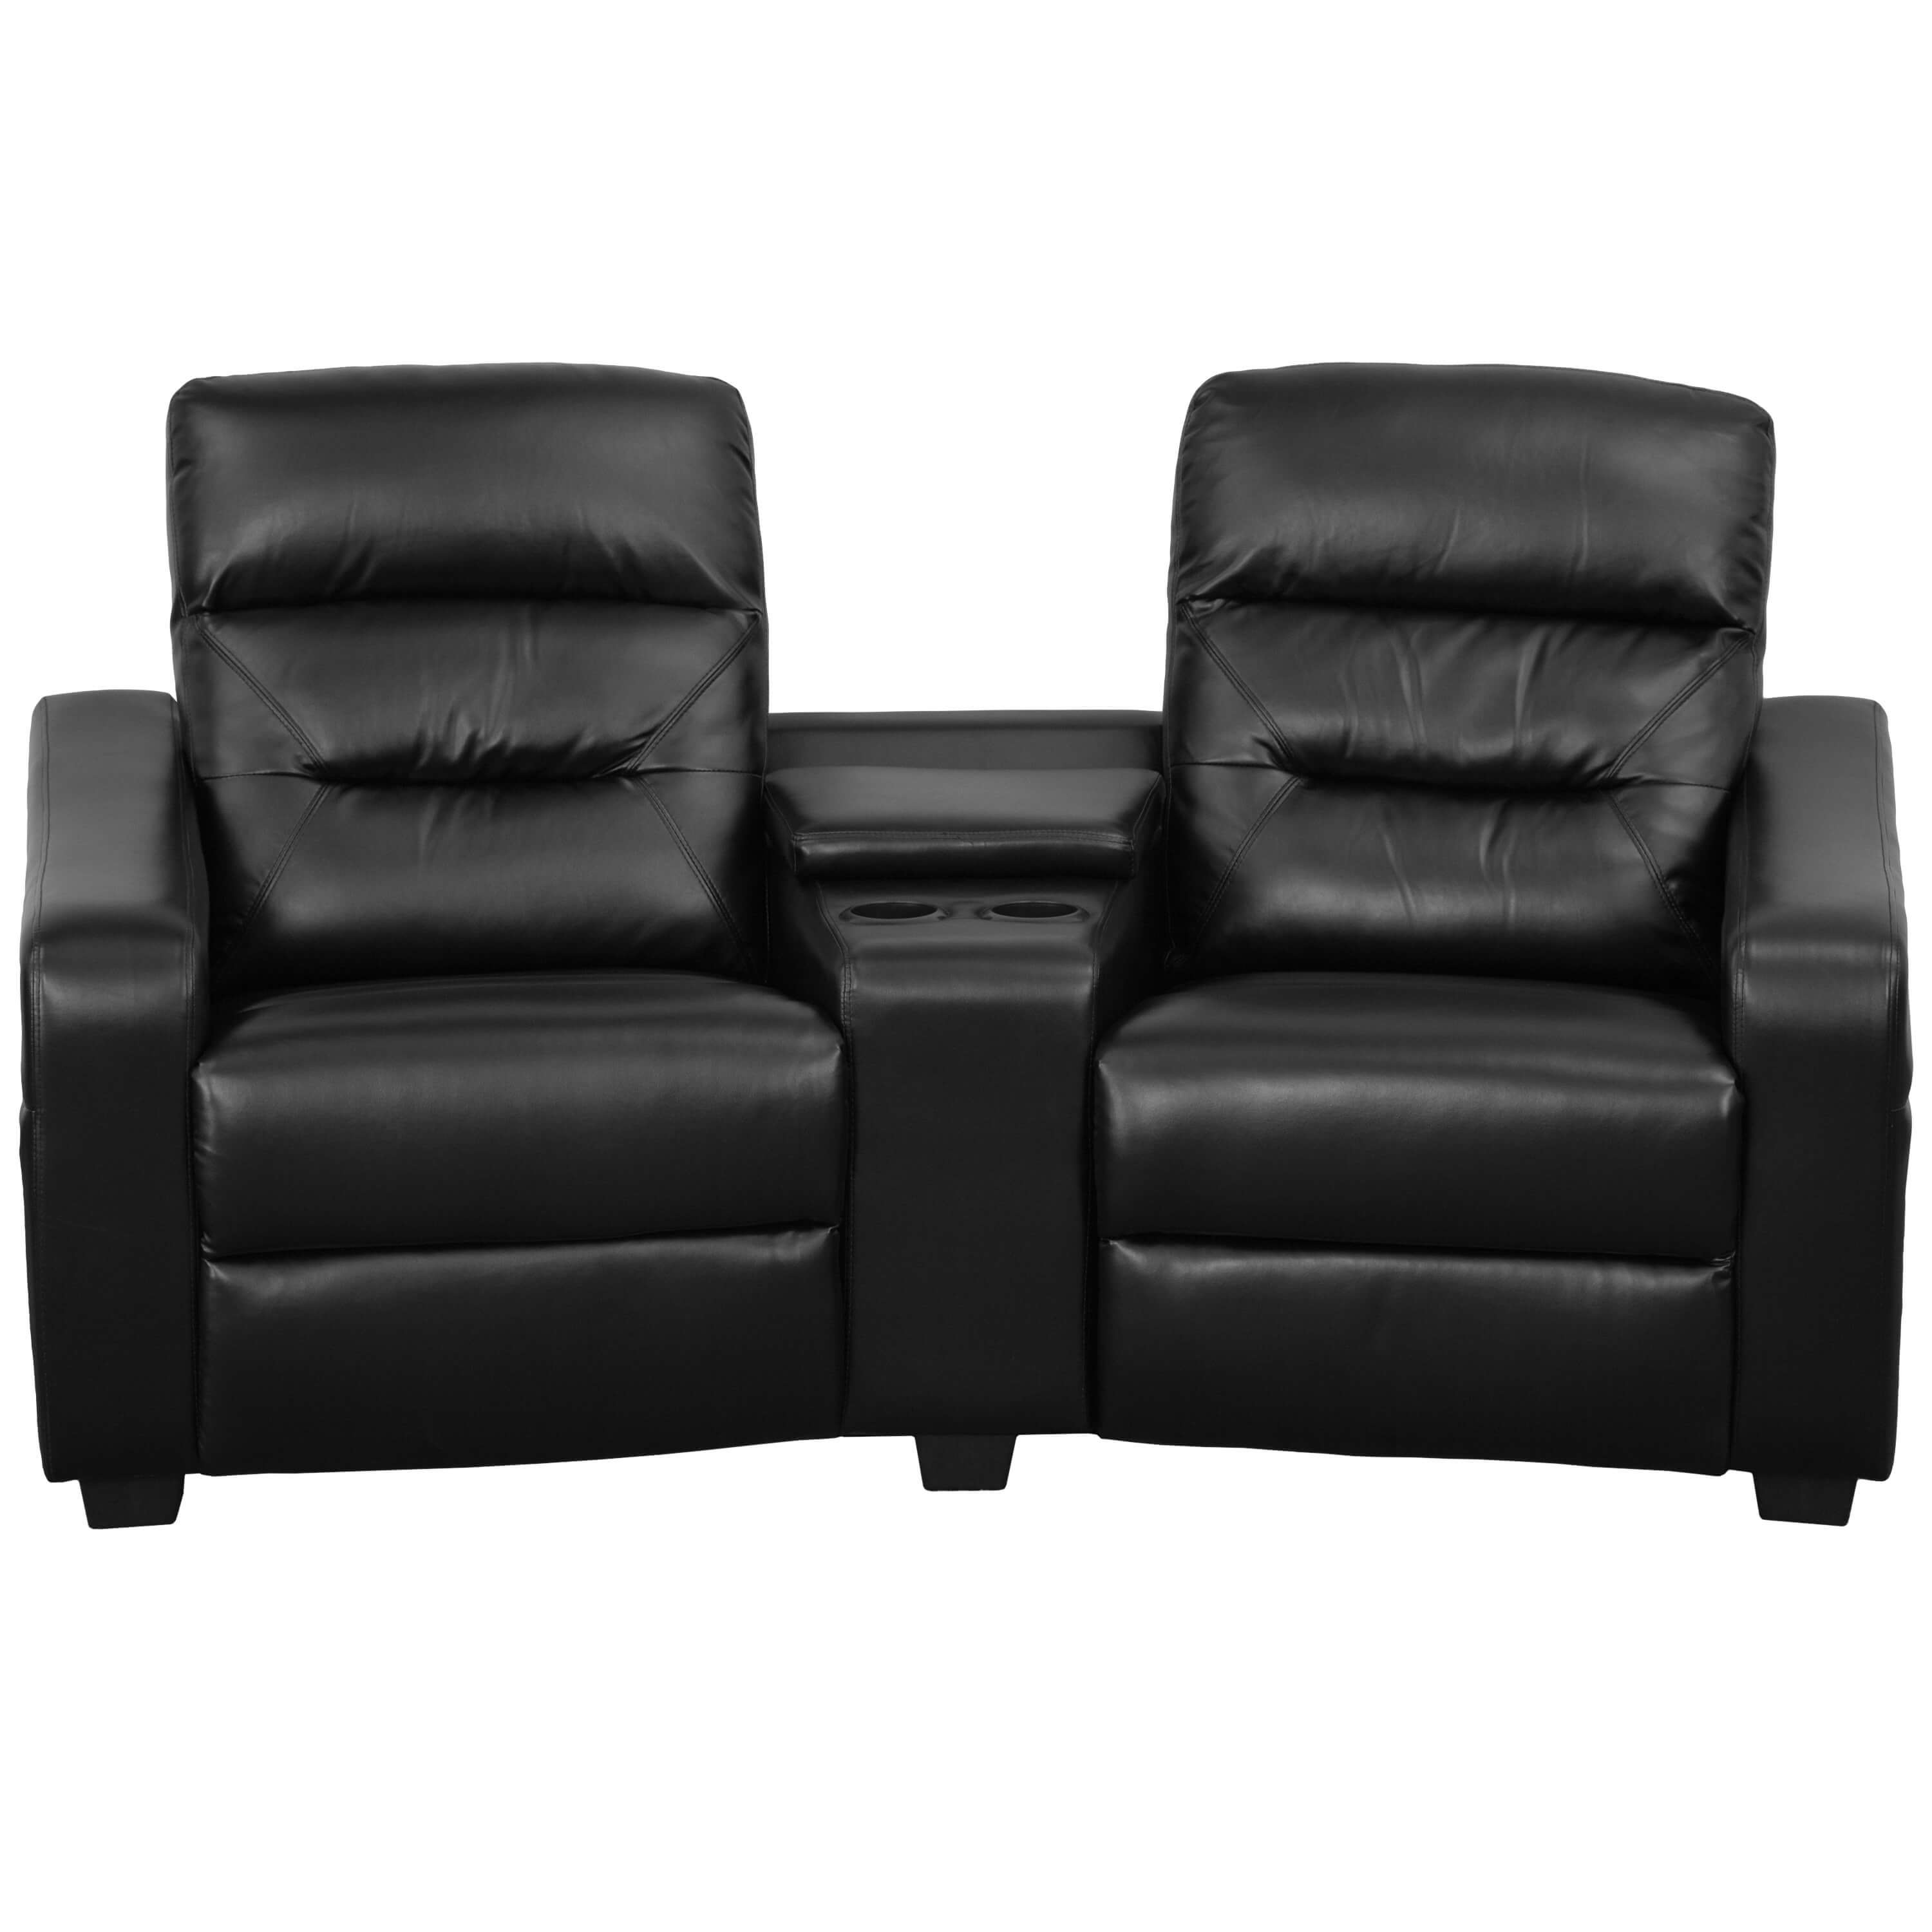 theater chairs home entertainment toddler table chair chaplin theatre seating couch